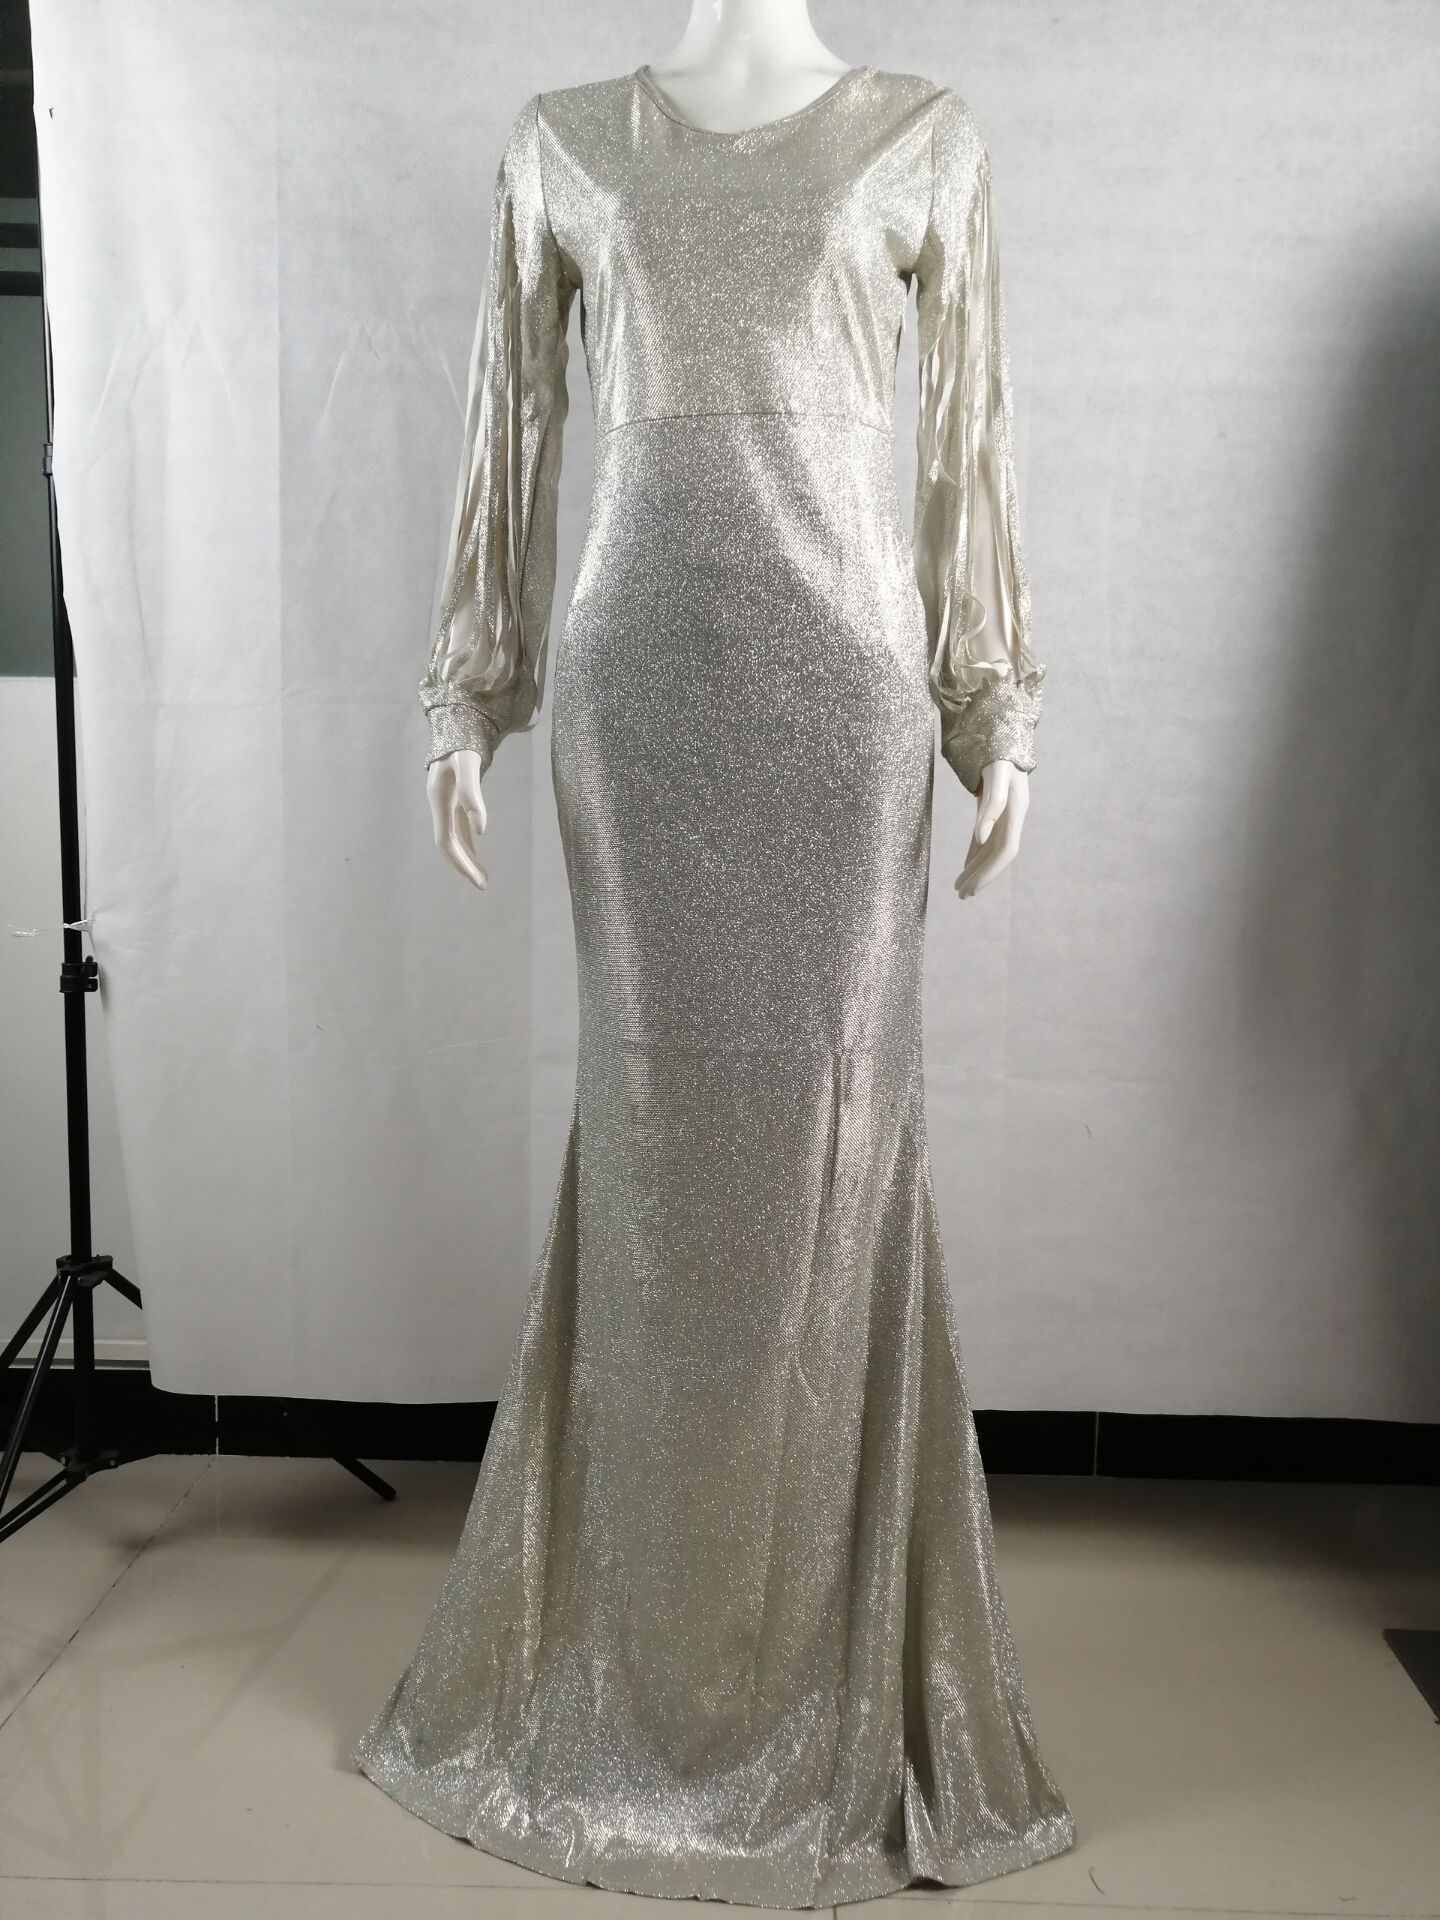 Hot sale elegant v-neck sequins sexy tassels sleeve bodycon Birthday party dress evening dresses FM-QZ190720